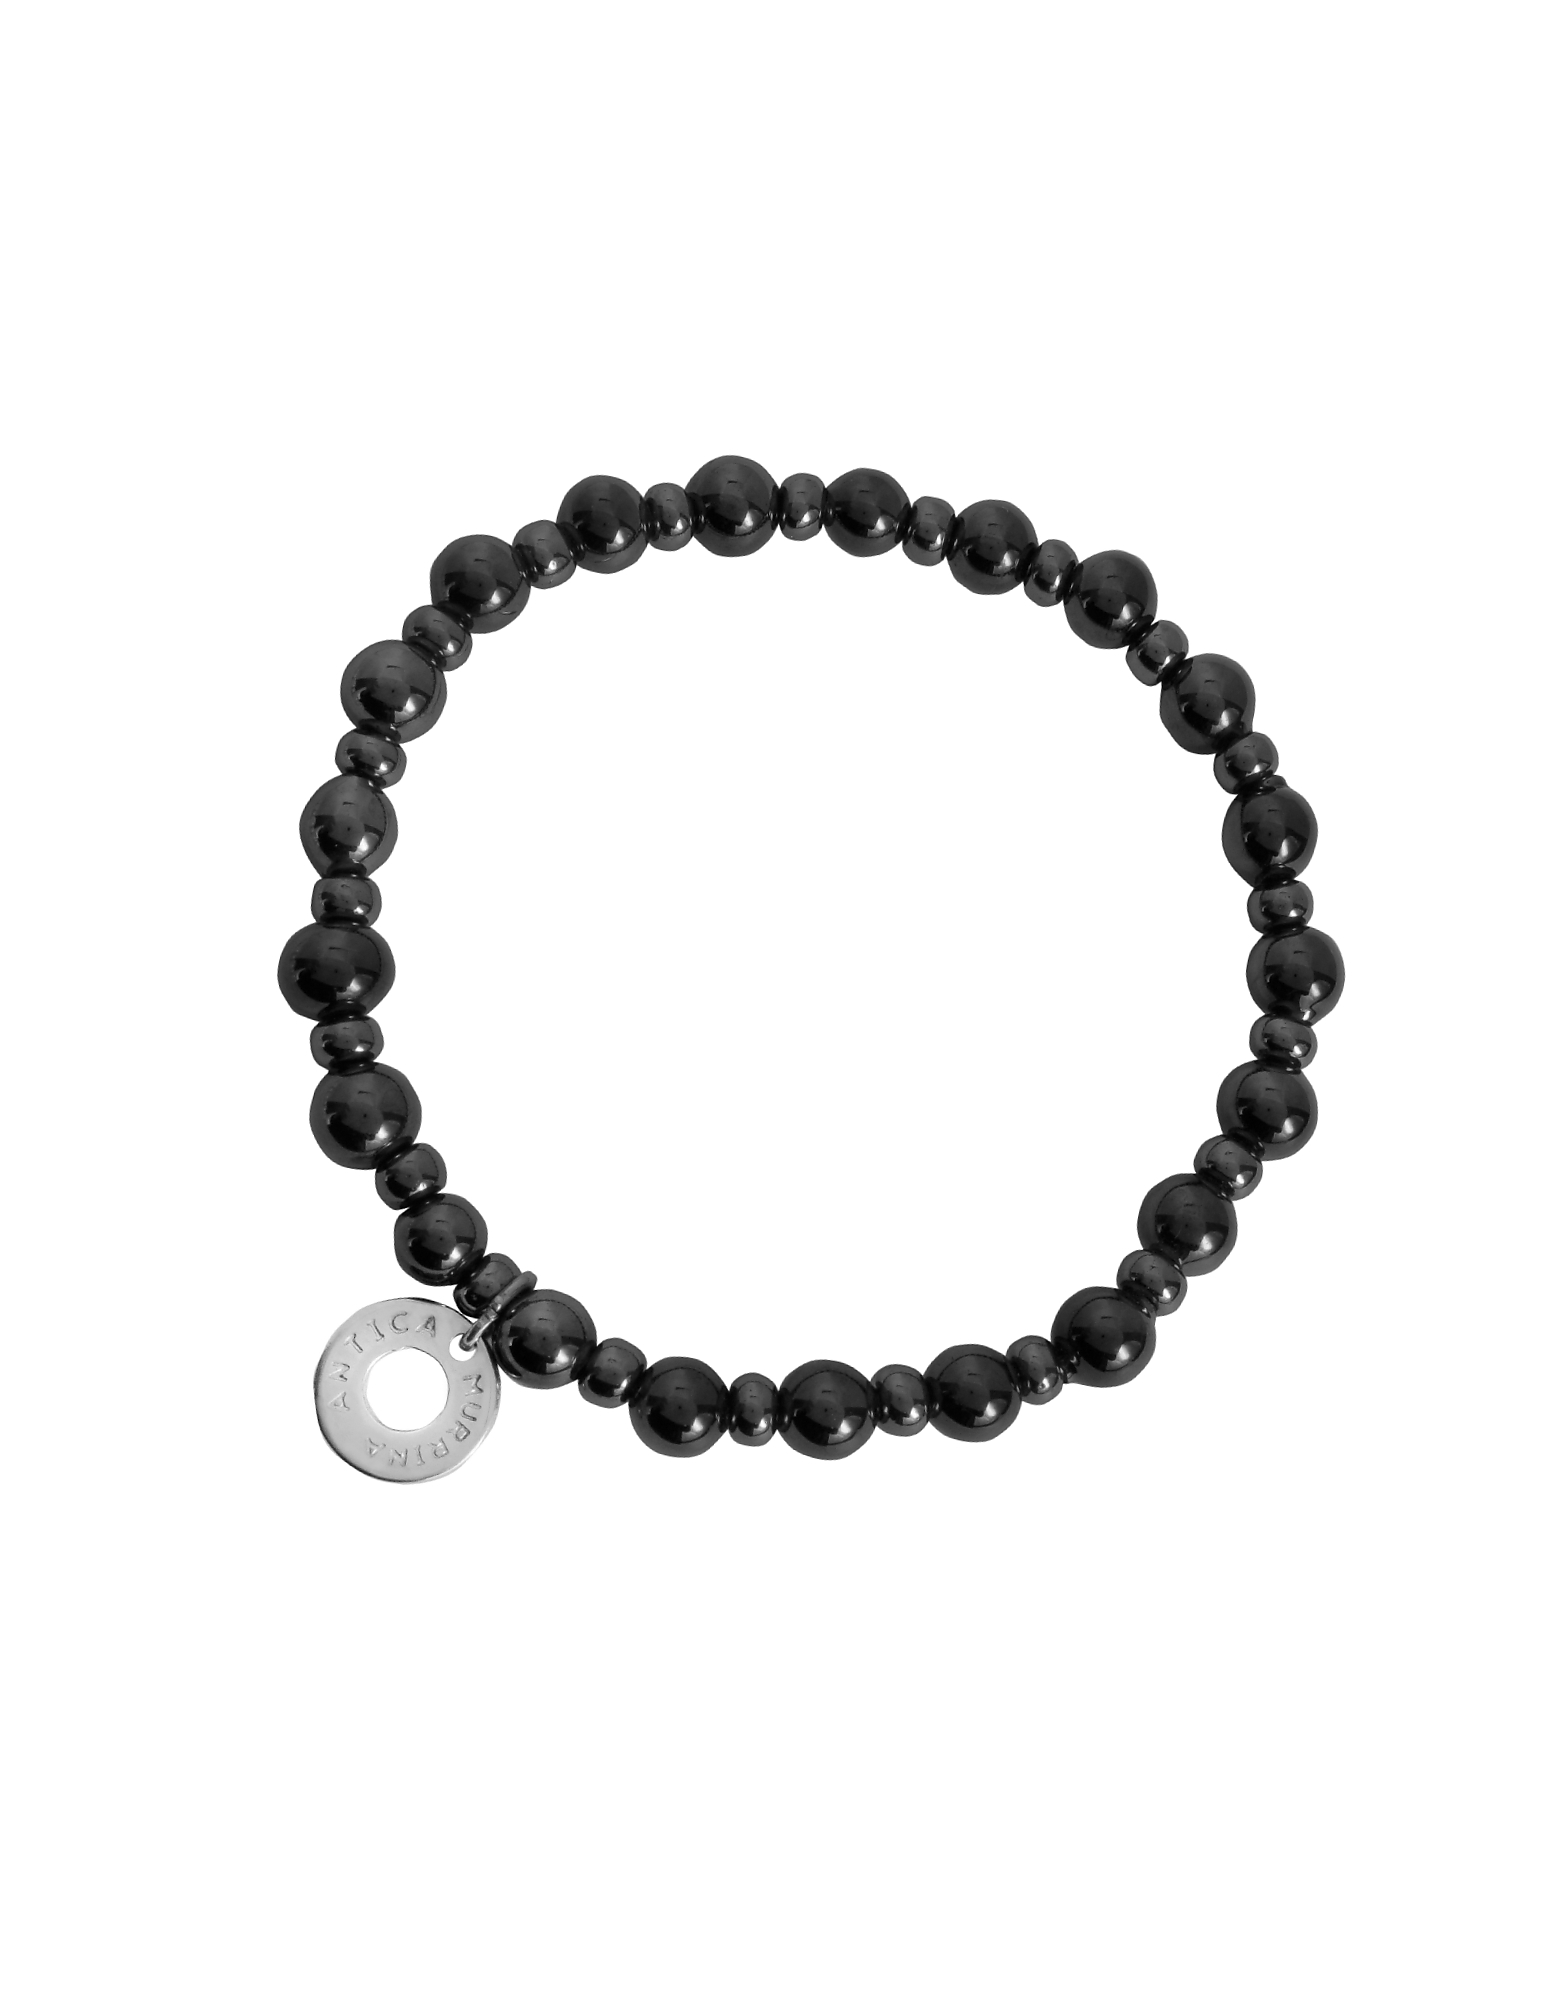 Antica Murrina Bracelets, Perleadi Black Murano Glass Beads Bracelet